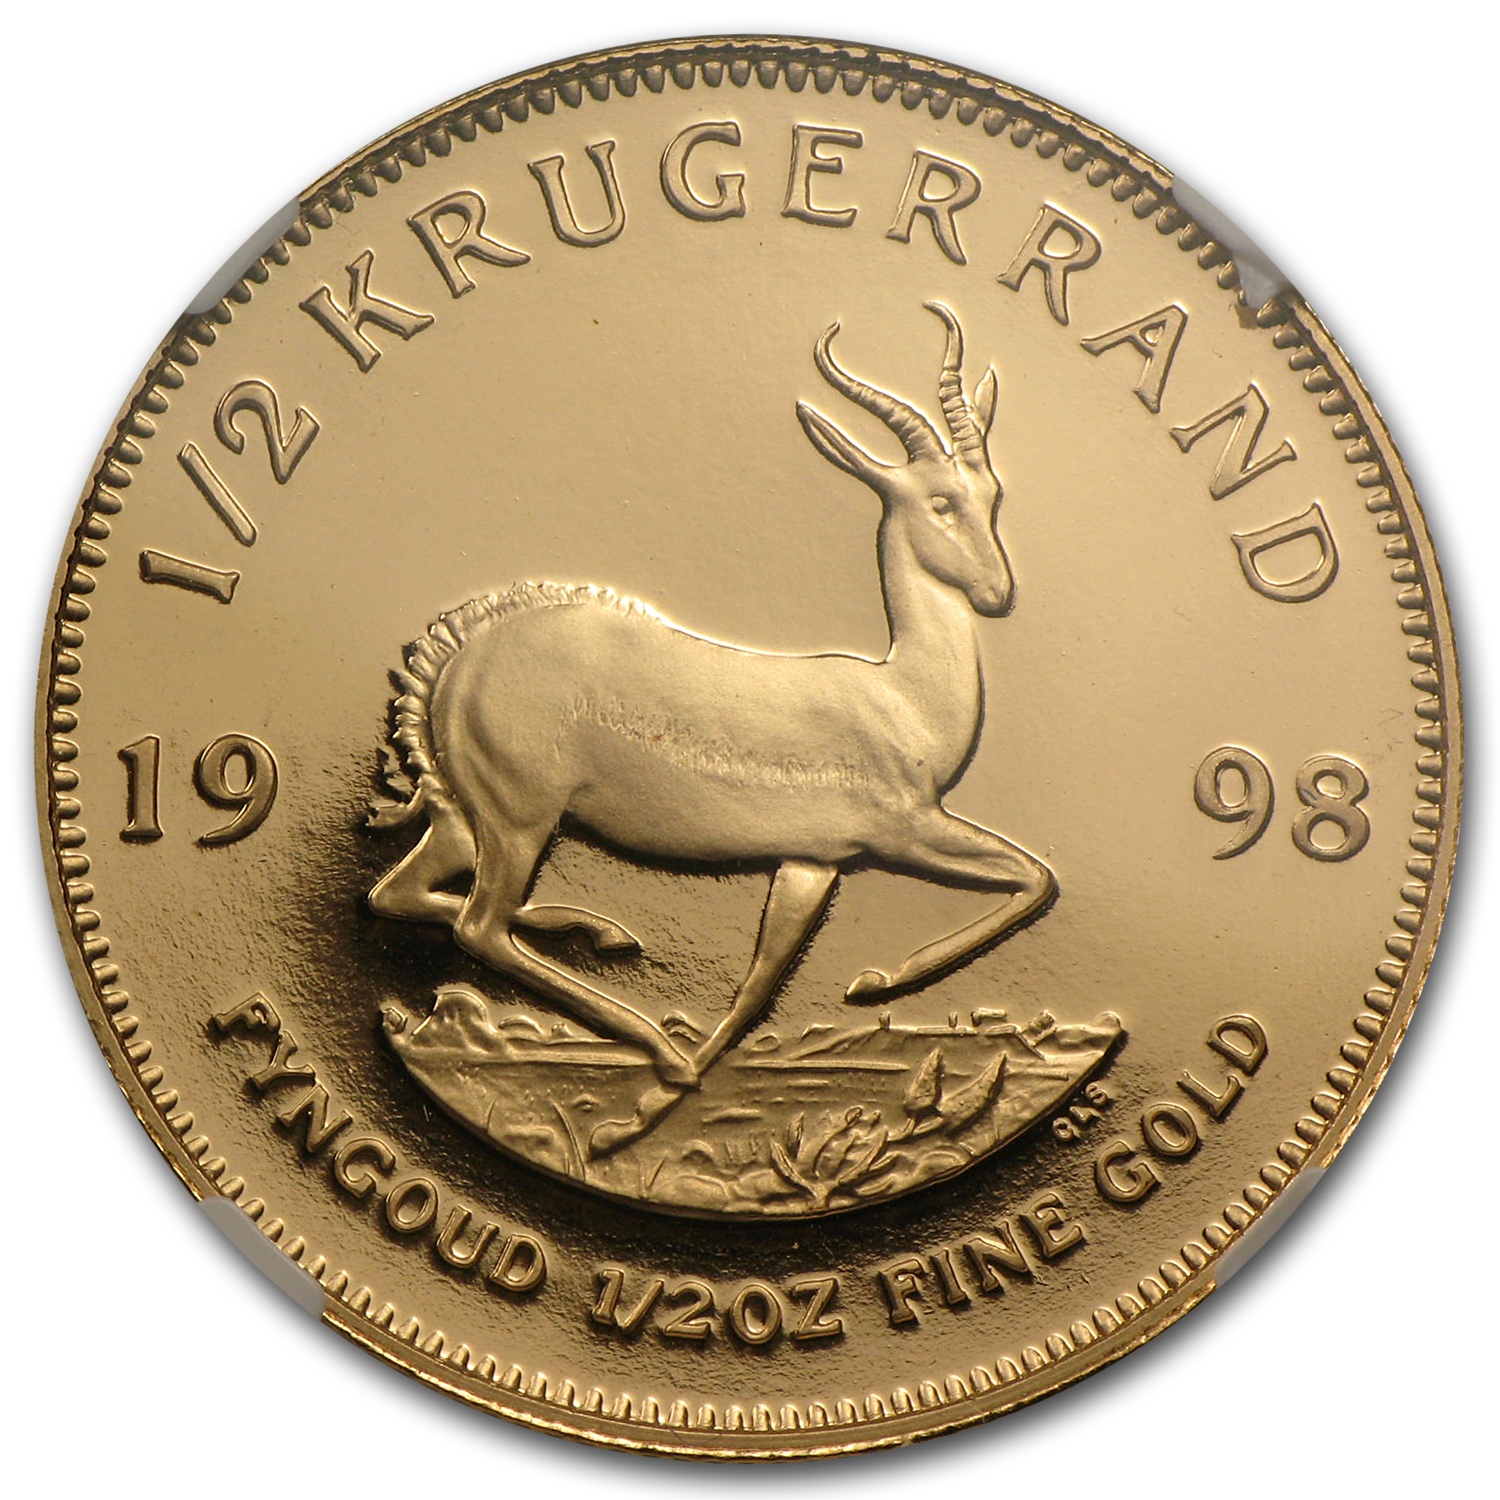 1998 South Africa 1/2 oz Gold Krugerrand PF-68 NGC